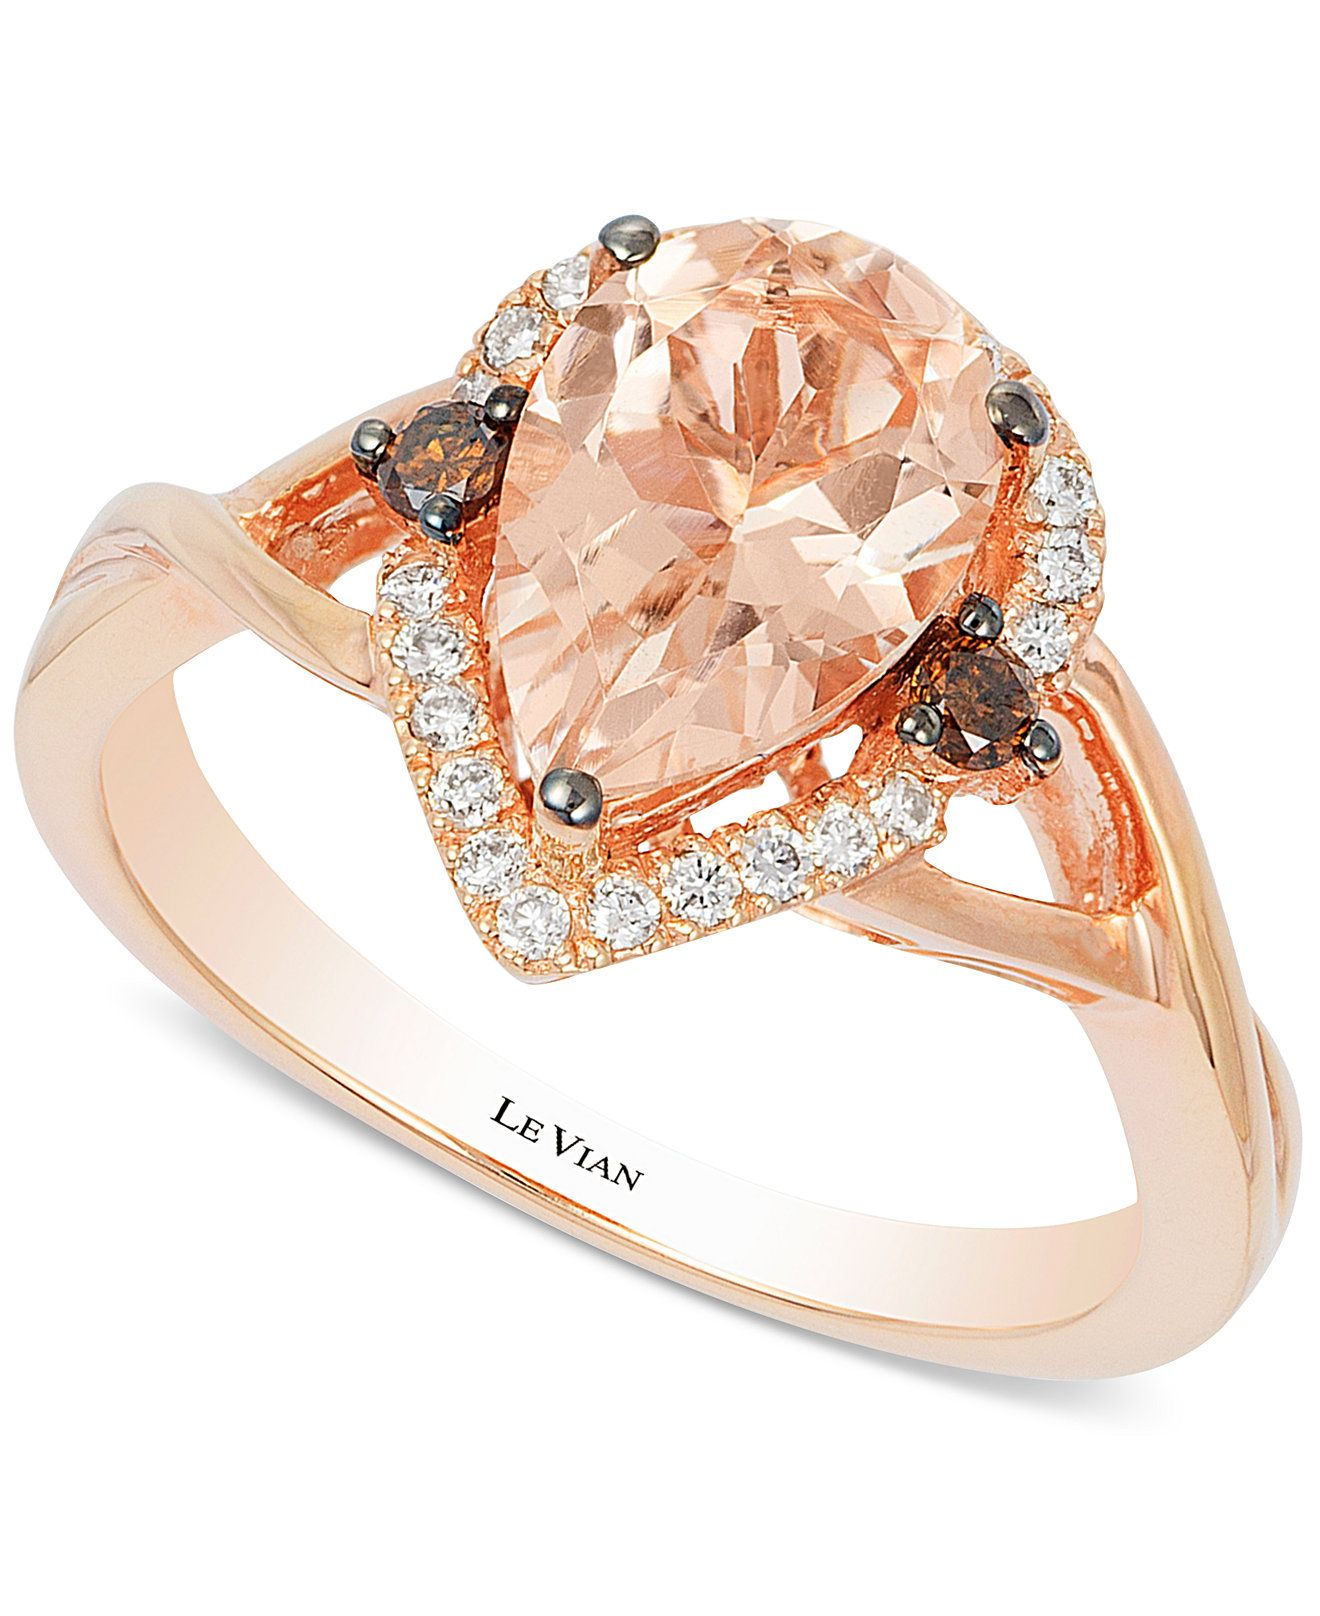 ben engagement white with david right jewelers diamonds this chocolate offset blog has levian vian le bridal wedding rings diamond each